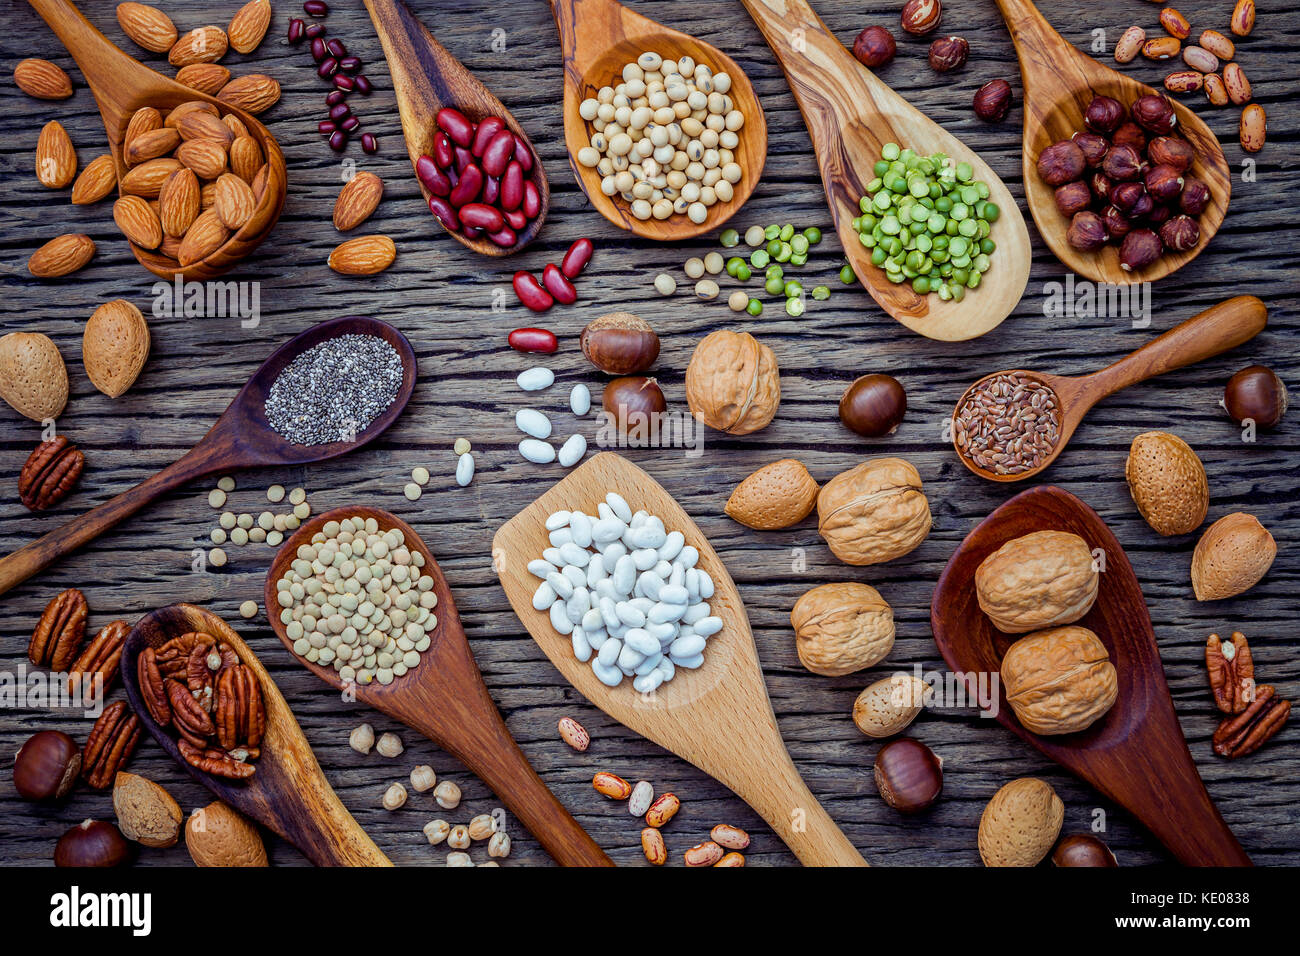 Various legumes and different kinds of nutshells in spoons. Walnuts kernels ,hazelnuts, almond ,brown pinto ,soy - Stock Image